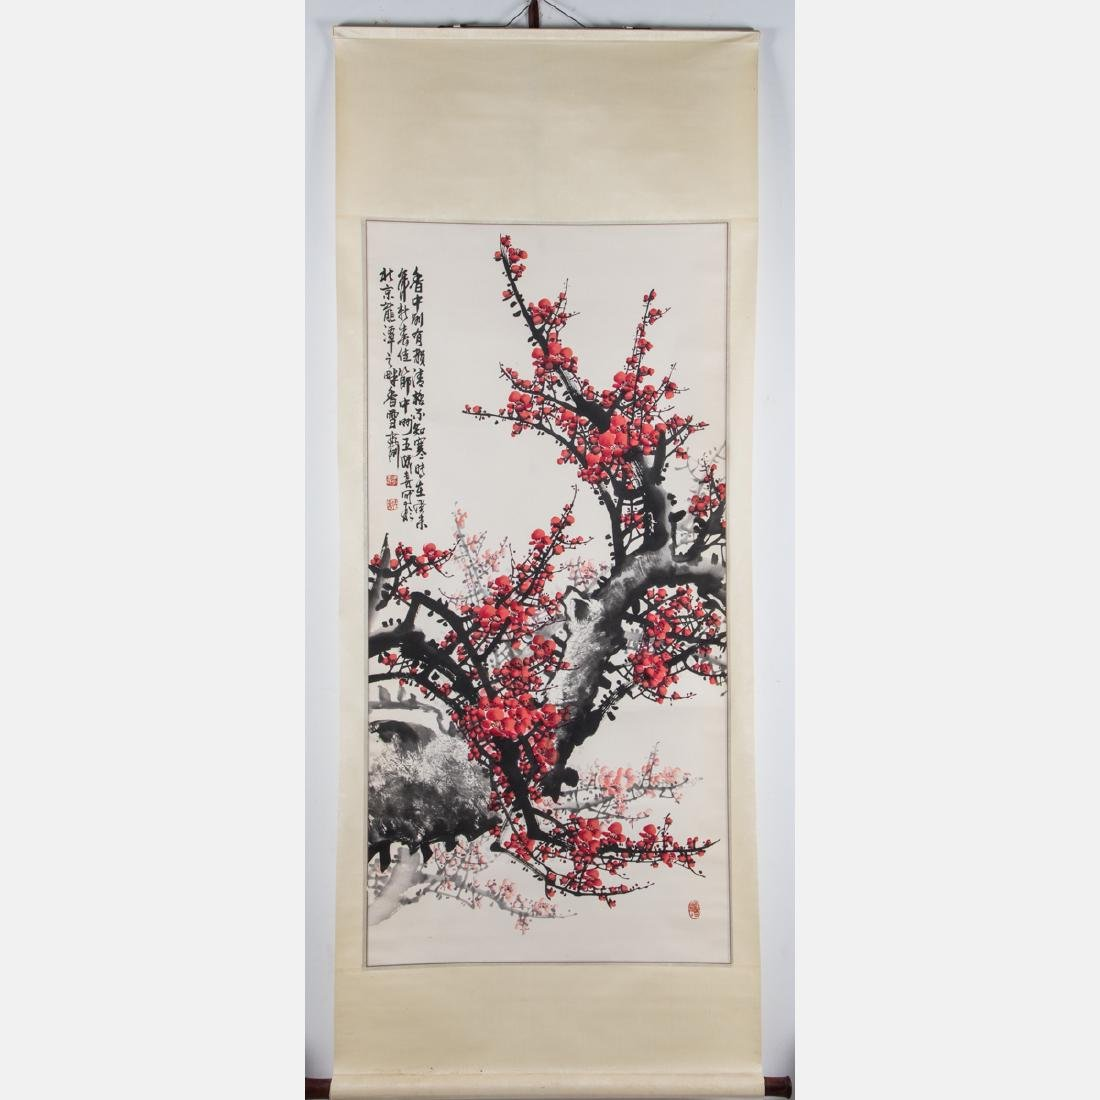 A Chinese Calligraphy Scroll Depicting a Cherry Blossom - 3